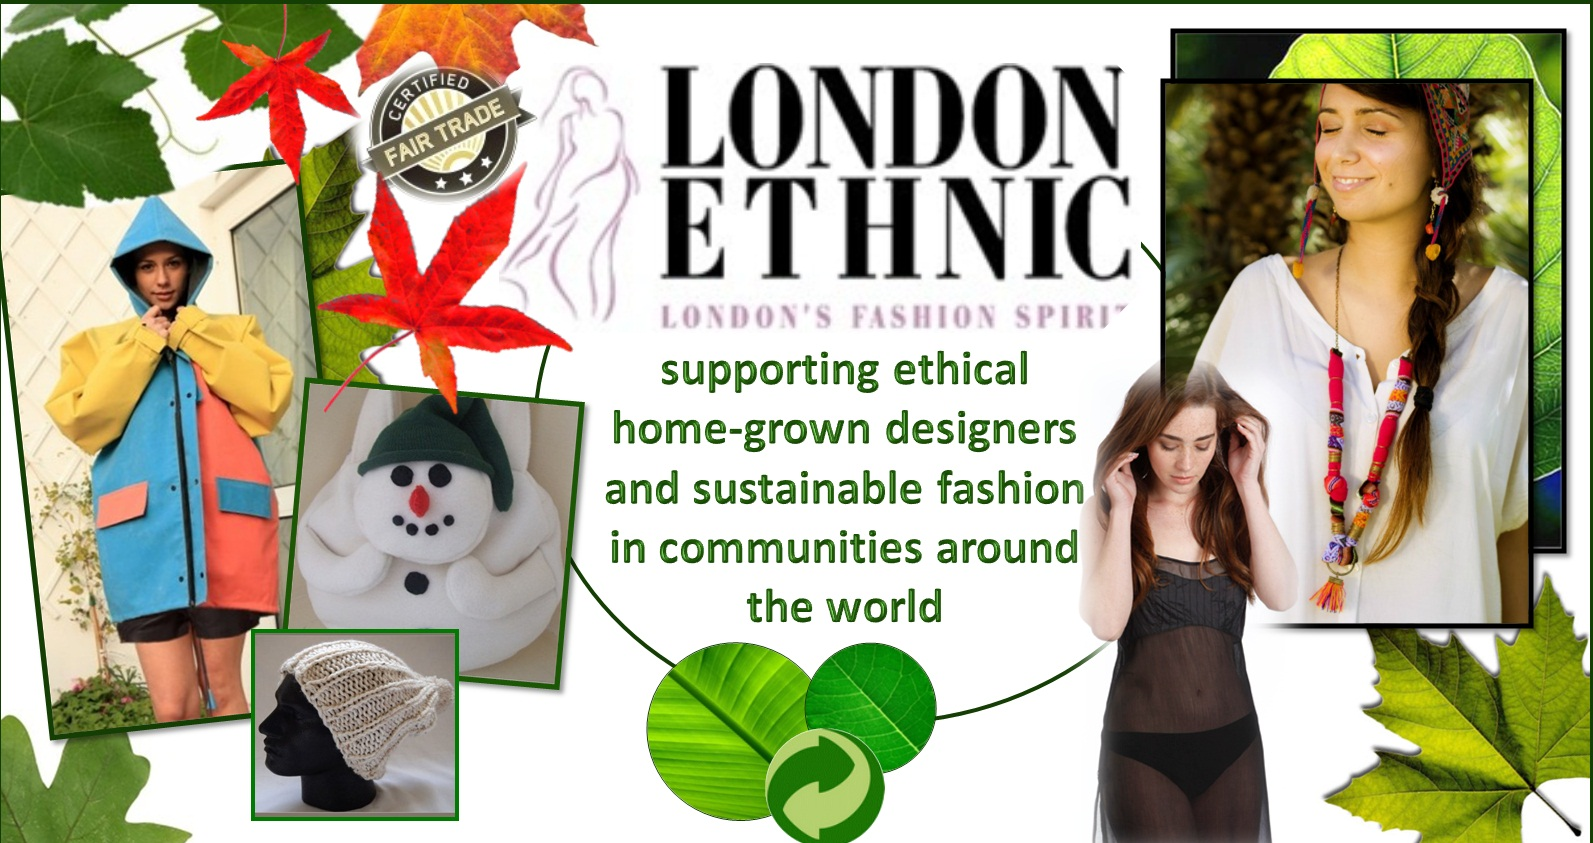 L.E banner2 1 London Ethnic   The Best of London Design